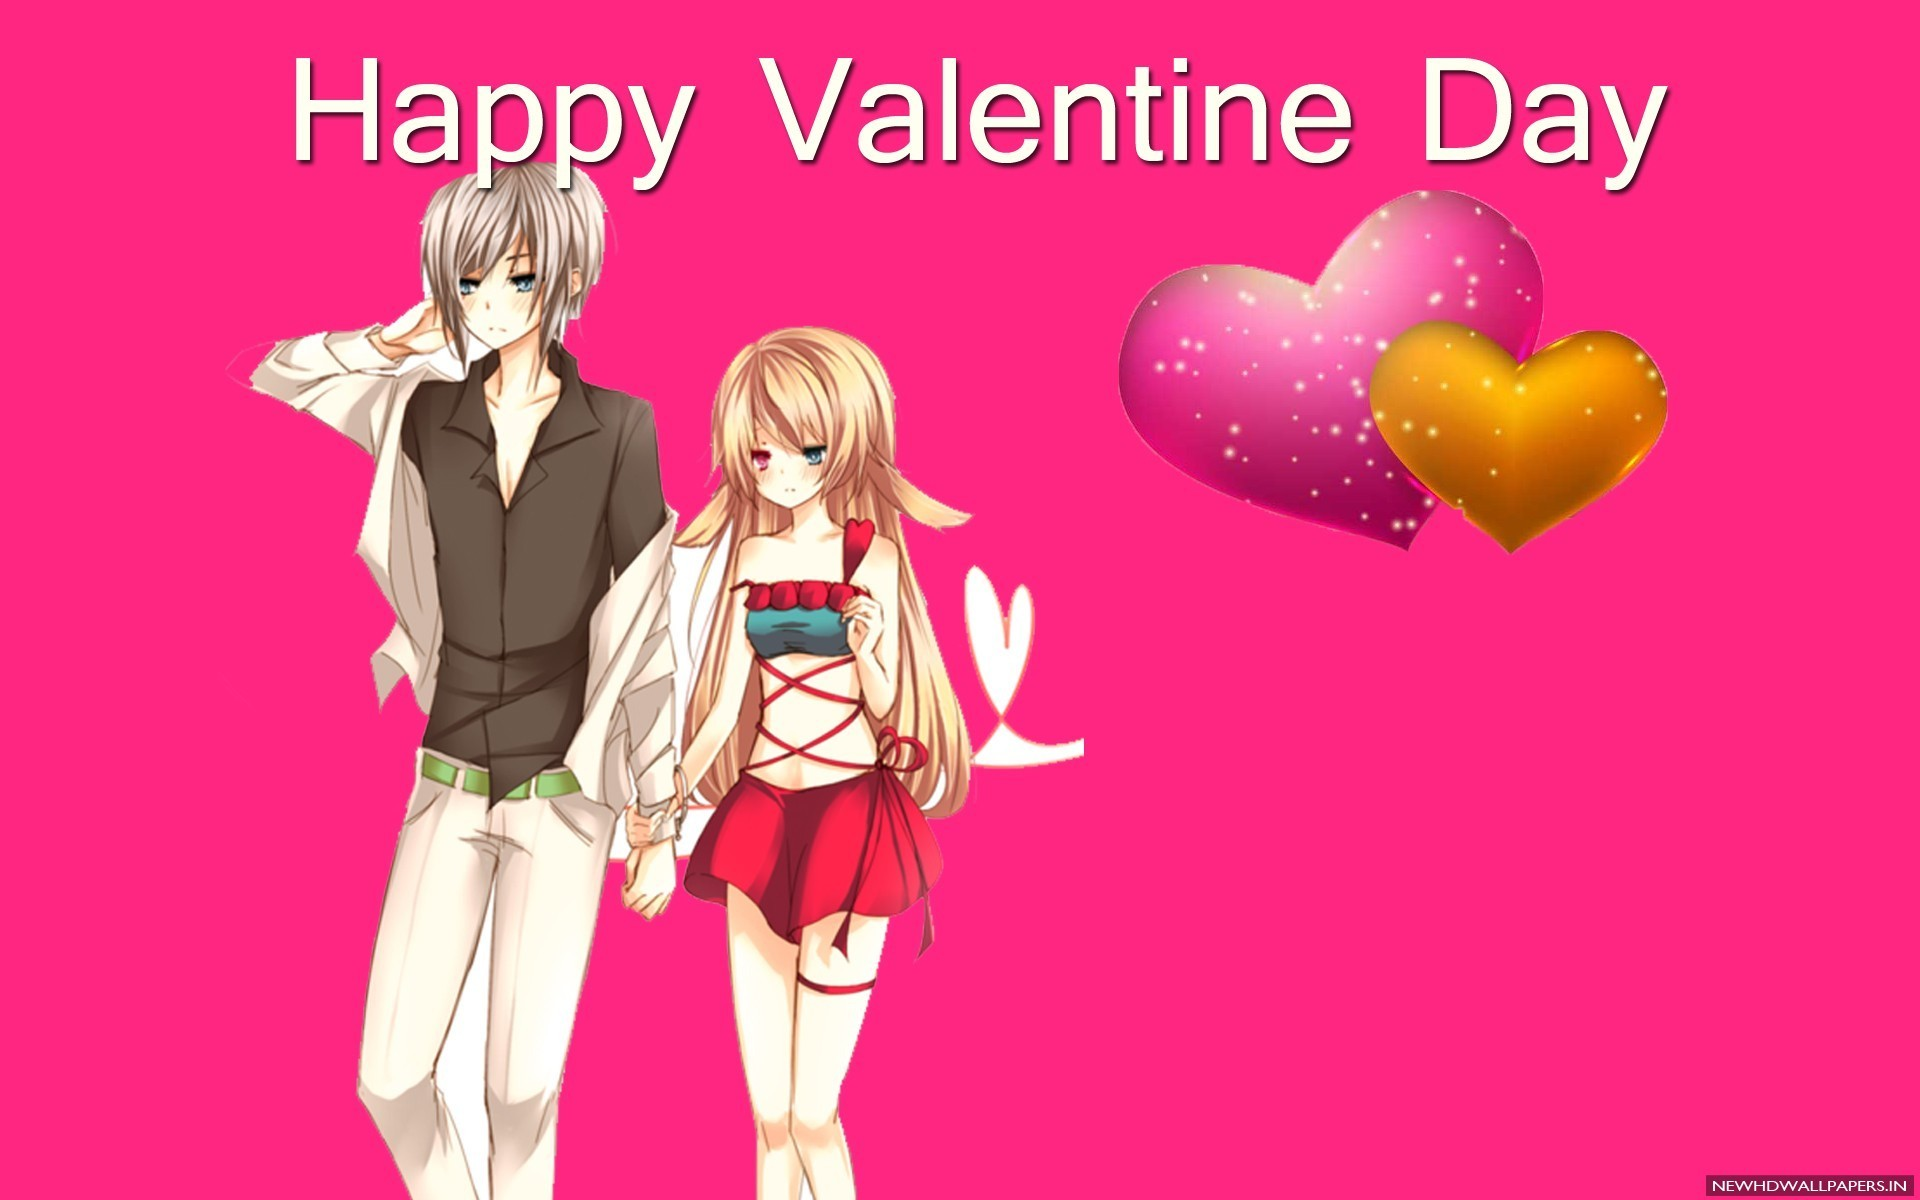 Happy Valentine Day Anime Couple 2015 Photo